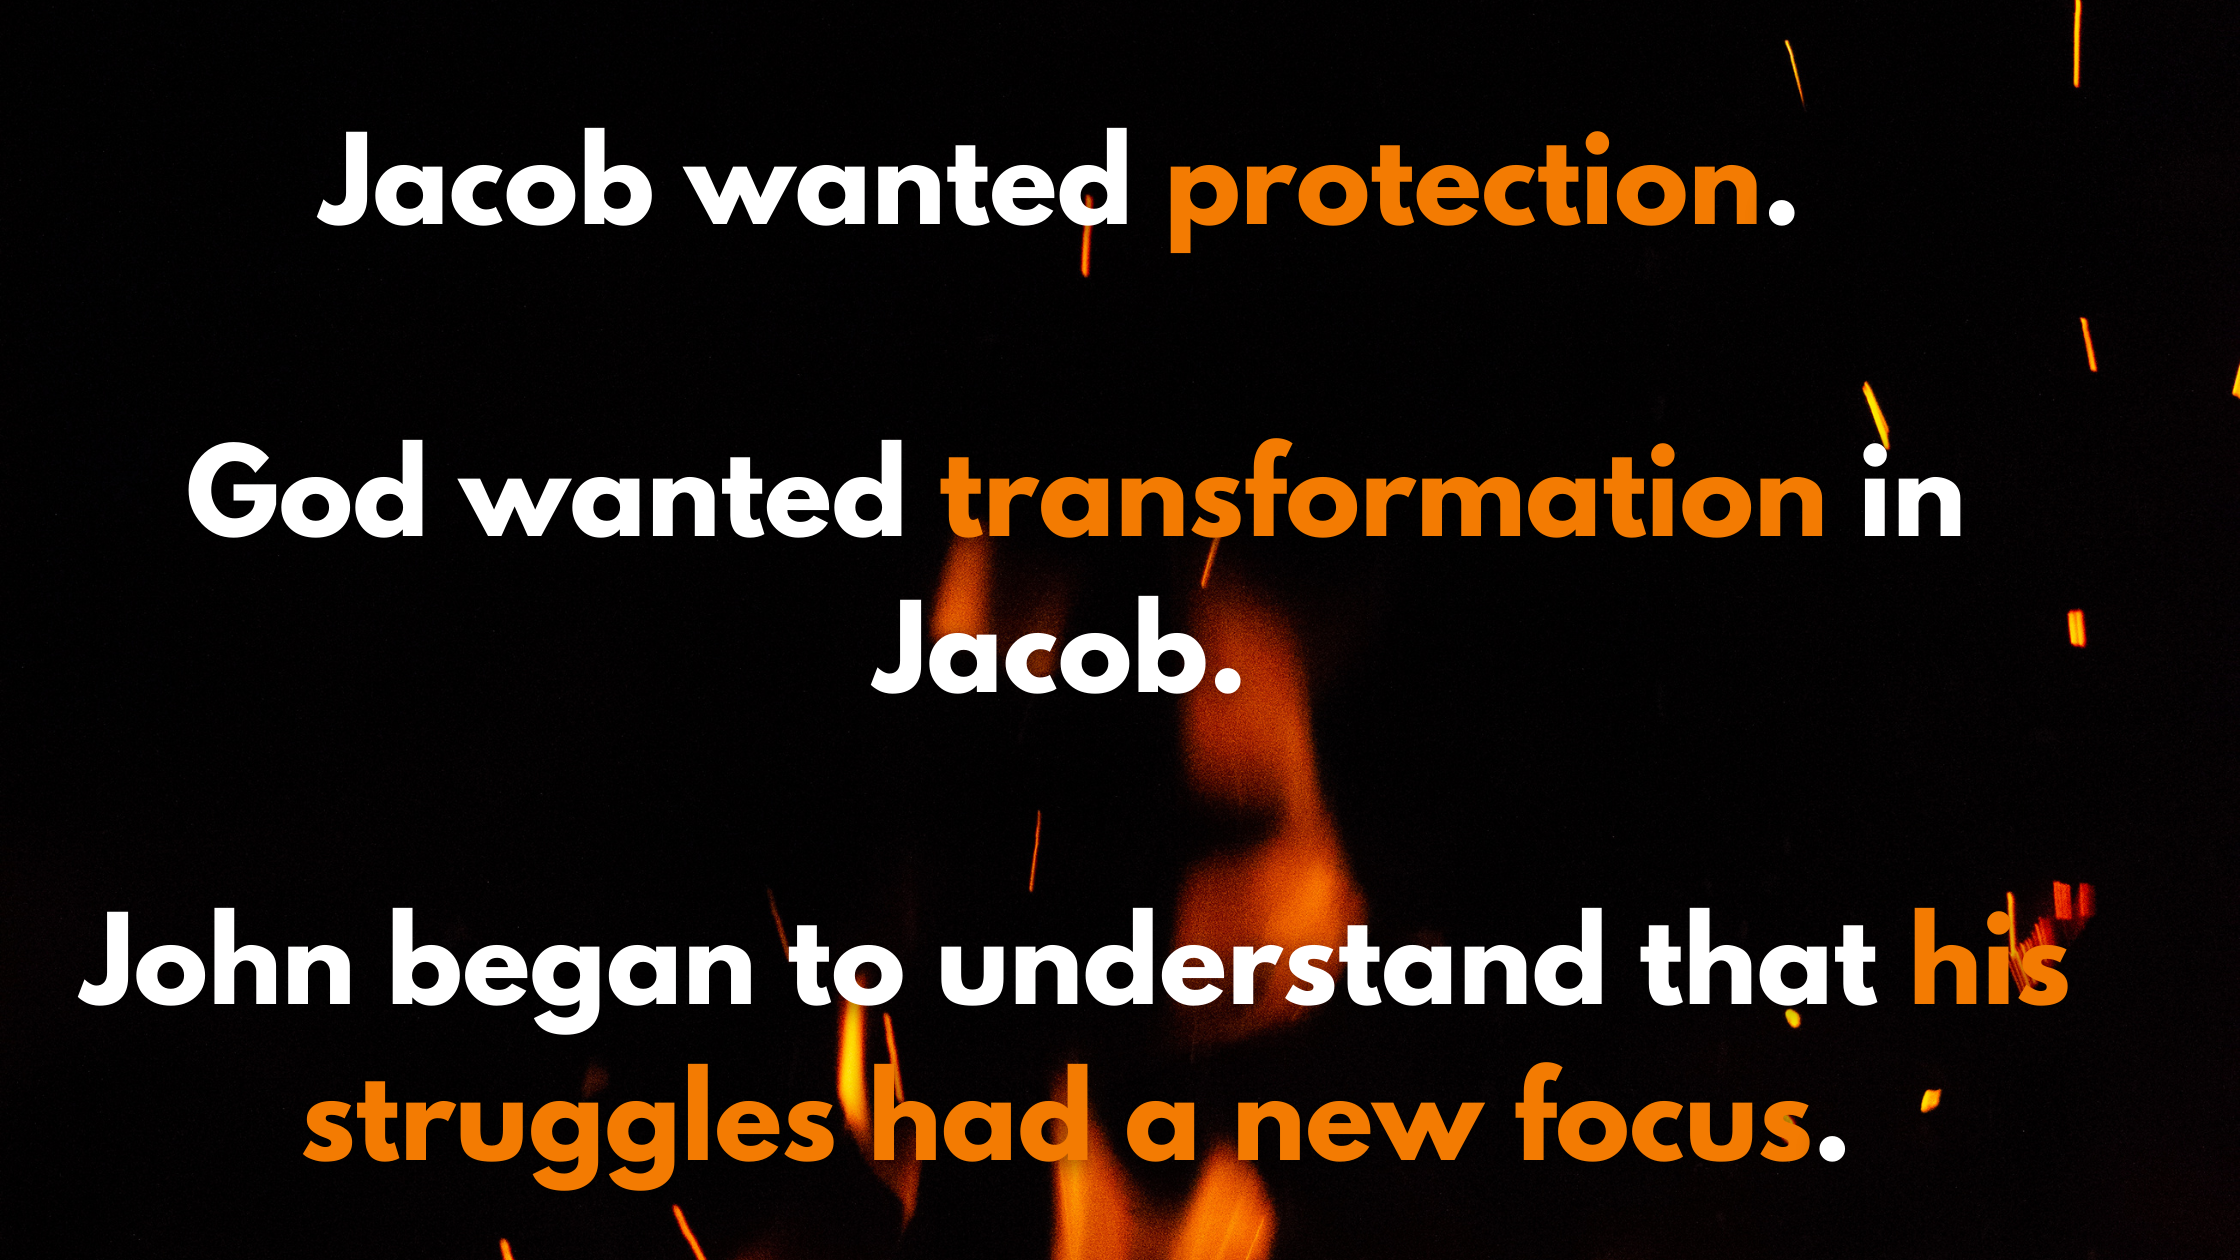 Jacob wanted protection. God wanted transformation in Jacob. John began to understand that his struggles had a new focus.